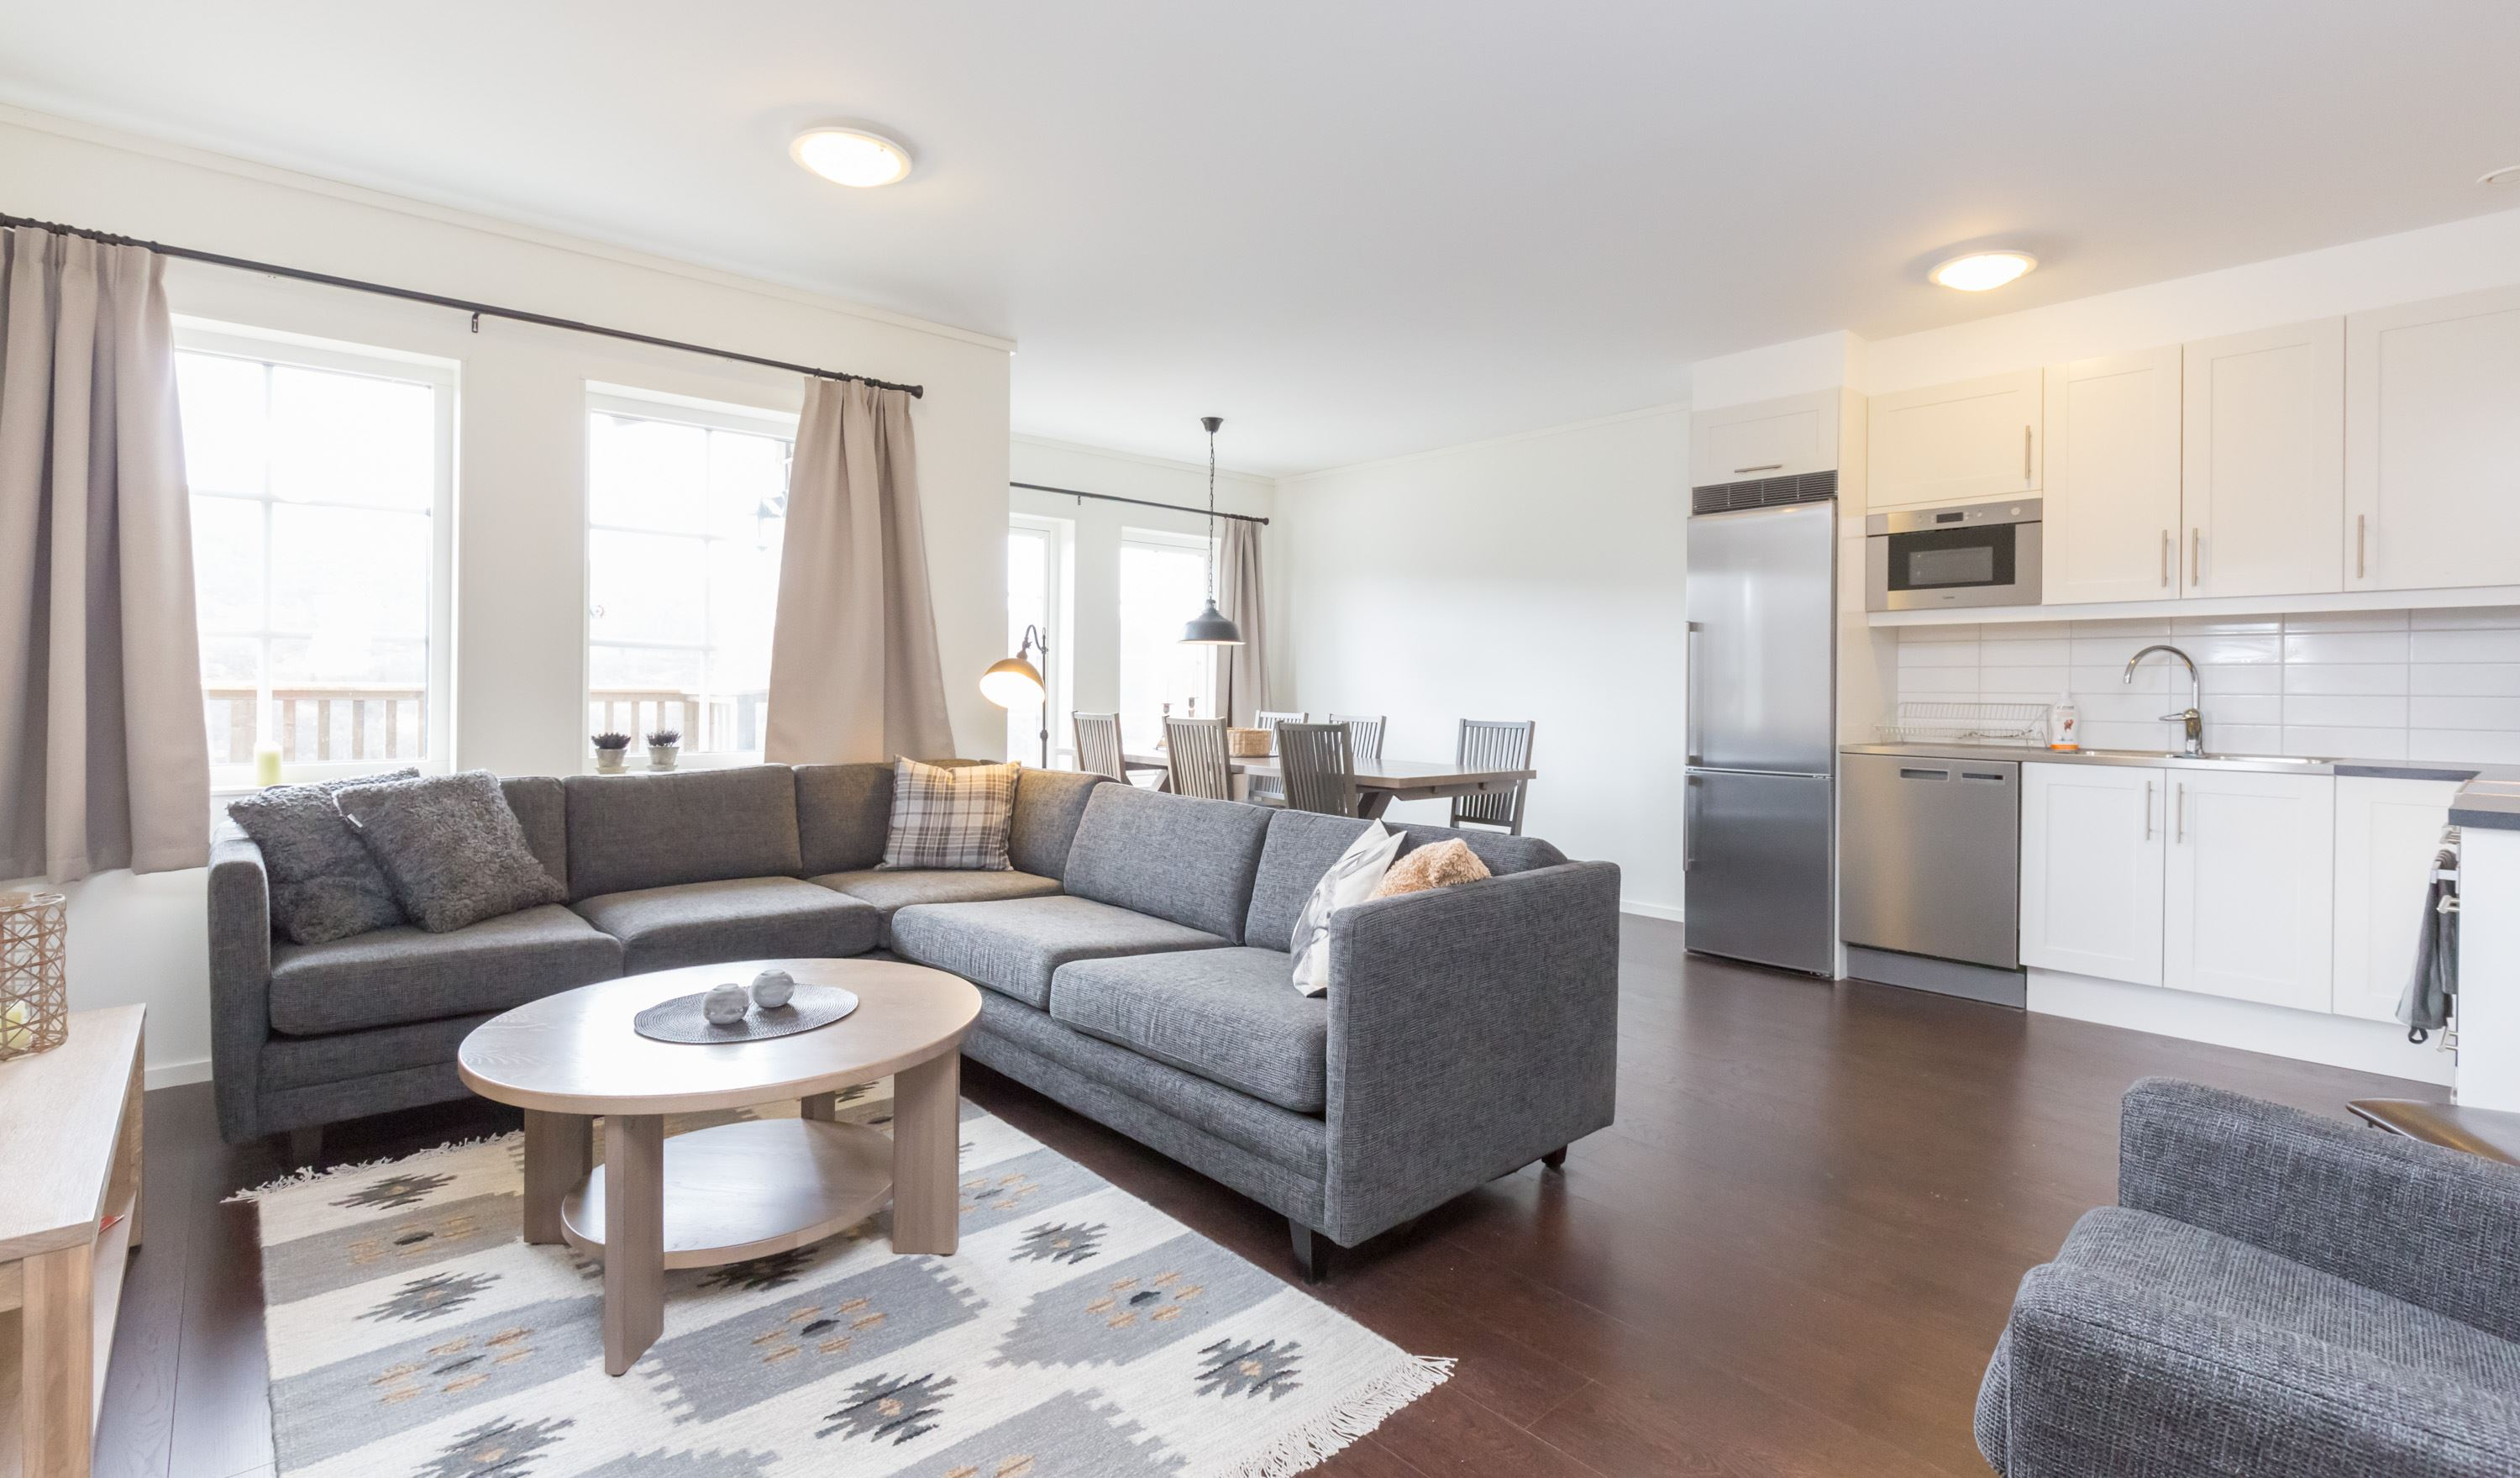 Apartment 900 6+2 beds